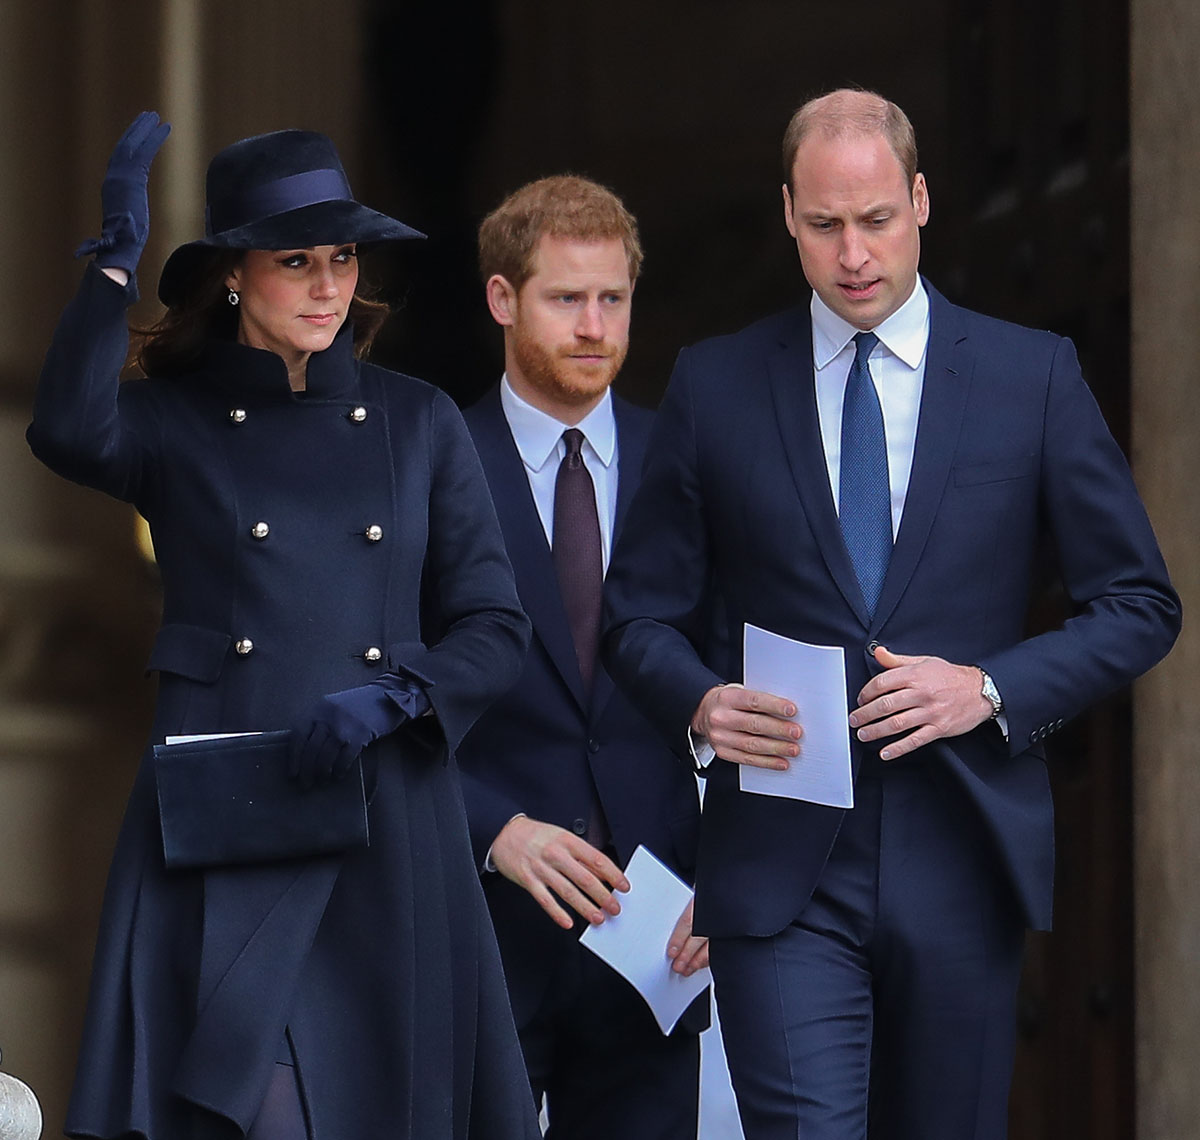 Prince William, Kate Middleton, Prince Harry attend Grenfell Tower National Memorial Service